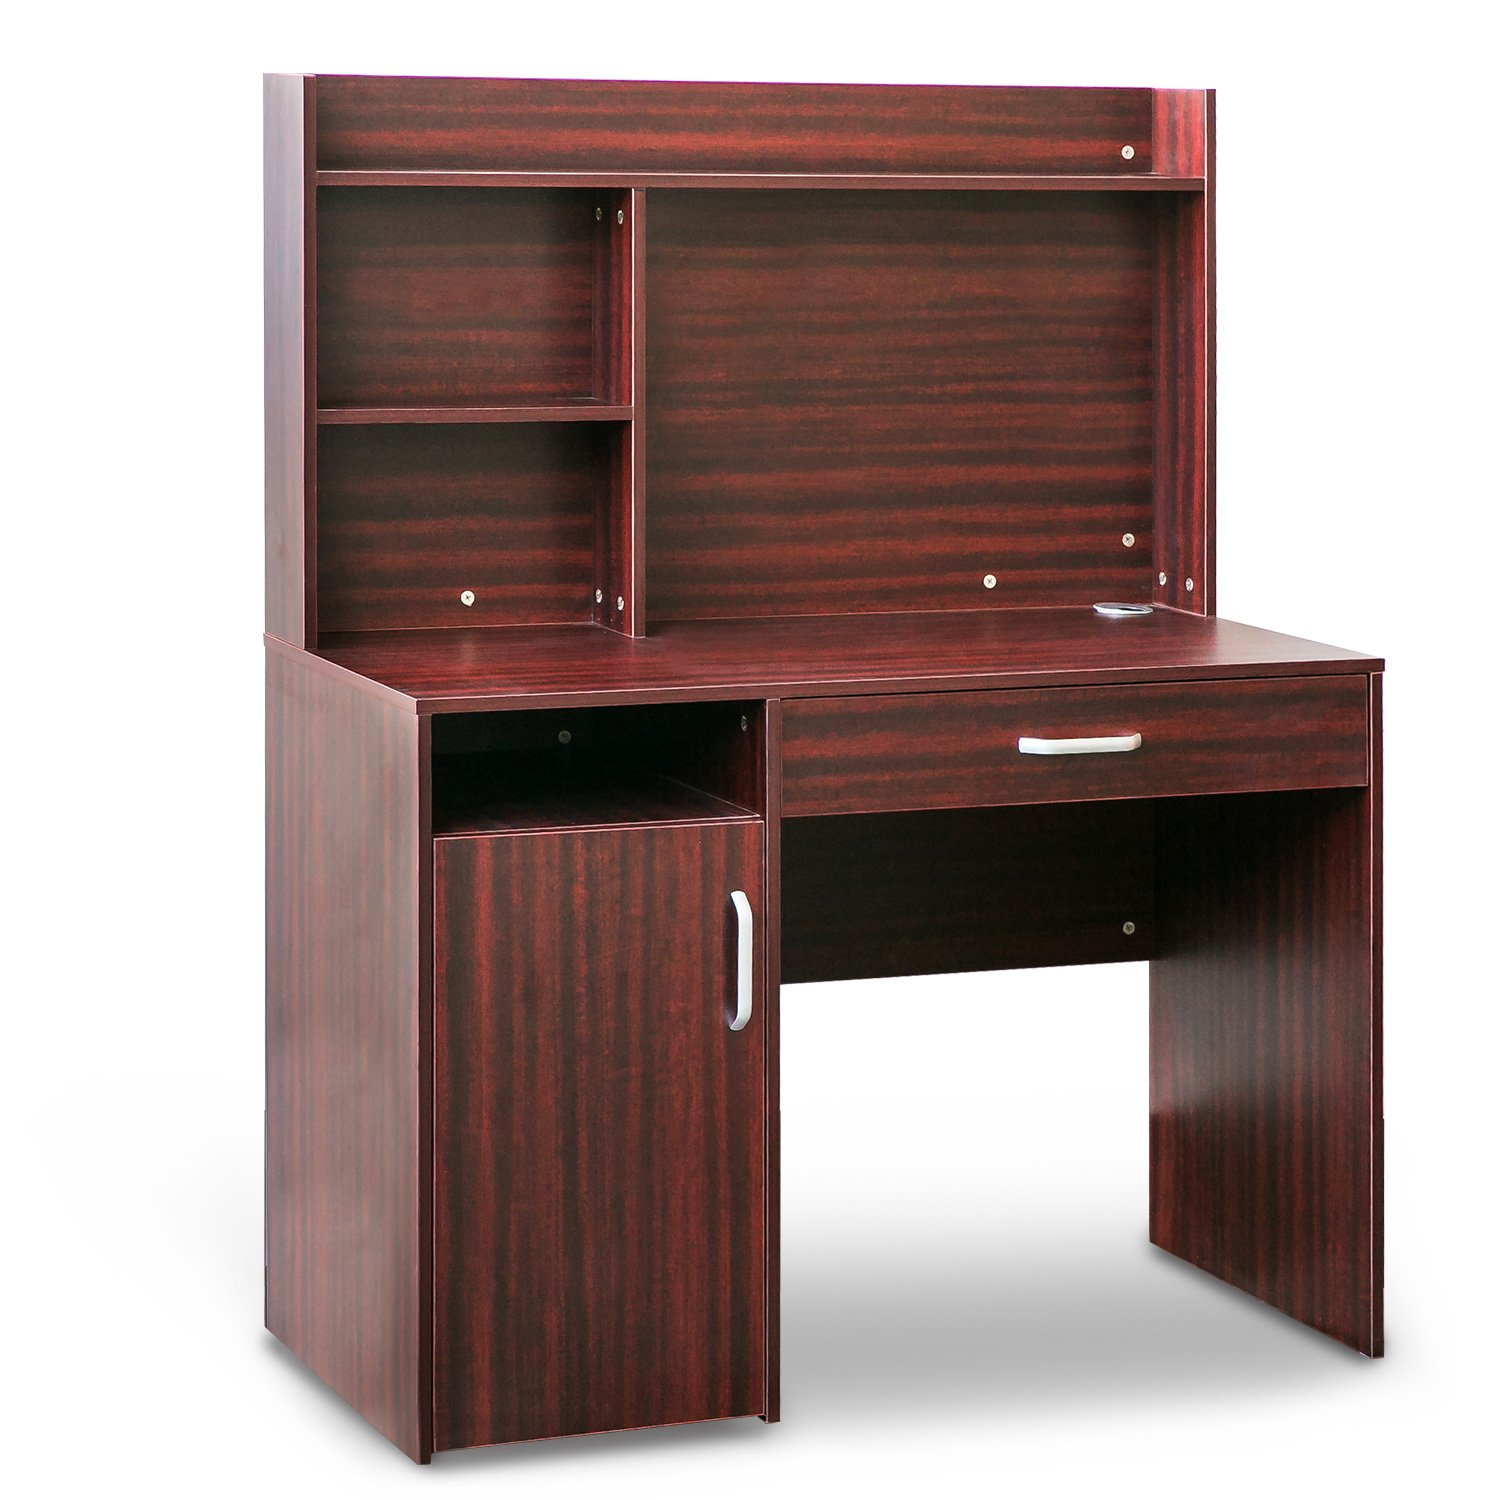 Merax Home Office Computer Desk with Hutch and Bookshelves (Reddish Brown)